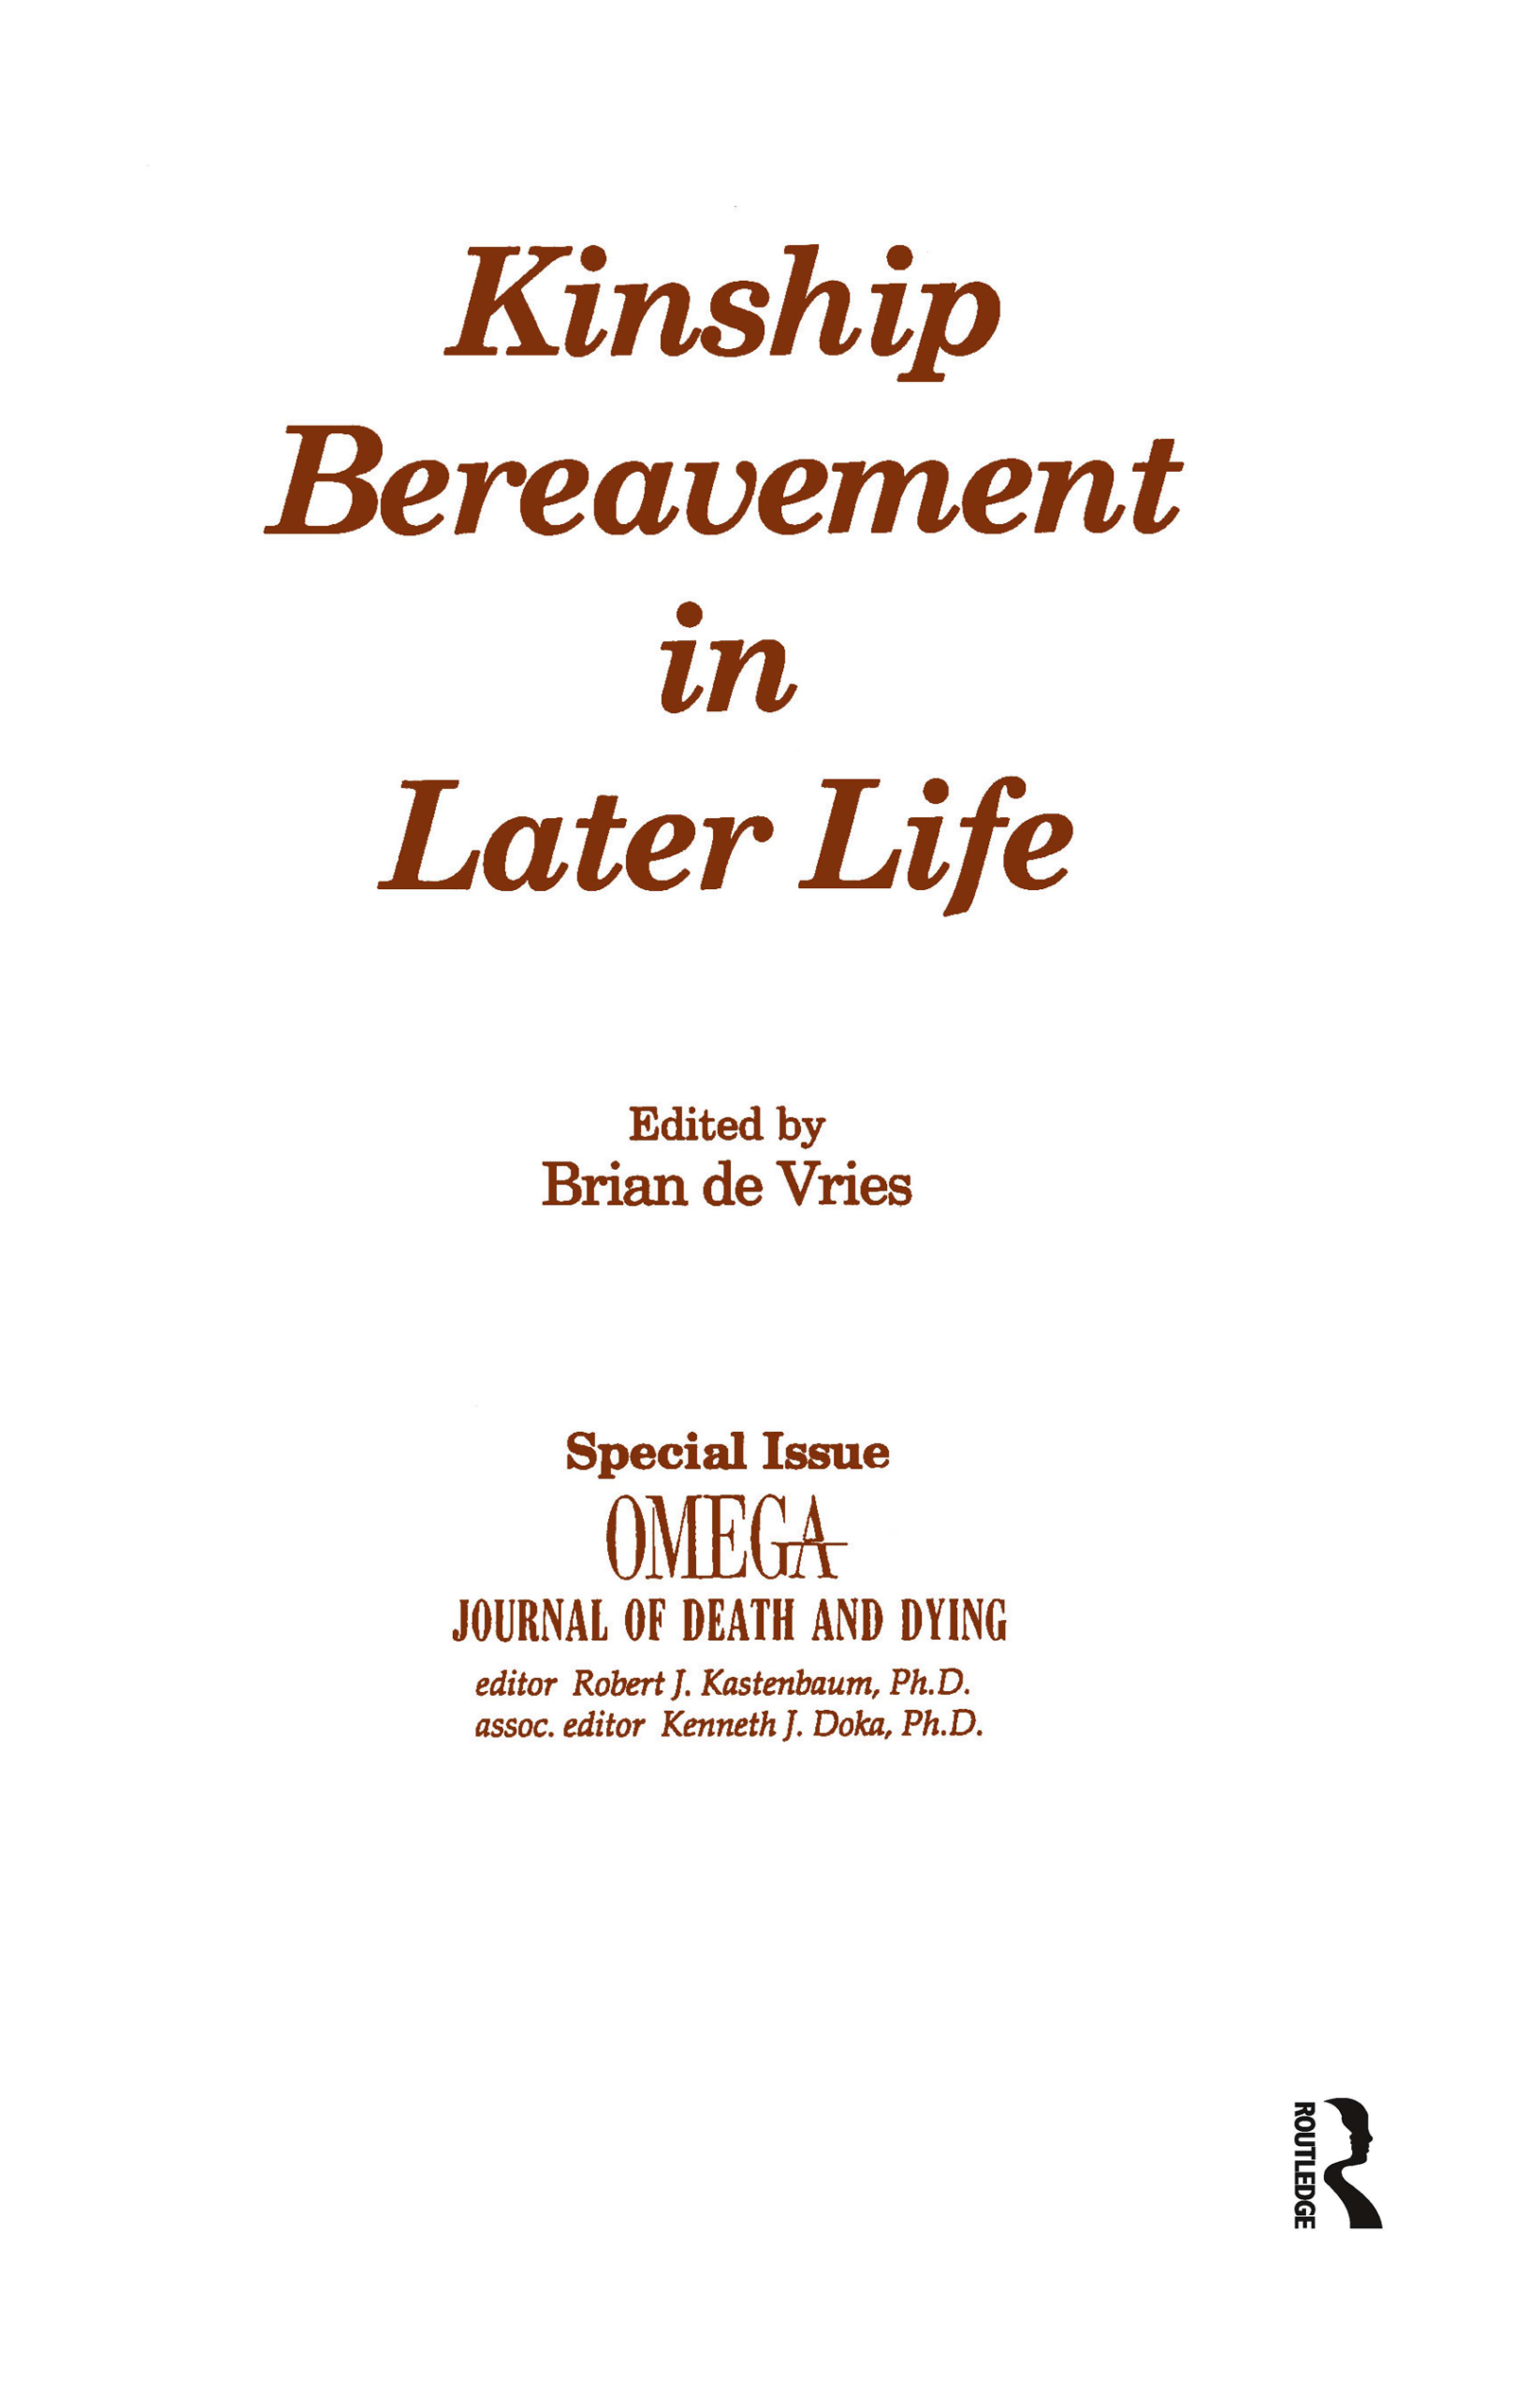 Kinship Bereavement in Later Life: A Special Issue of